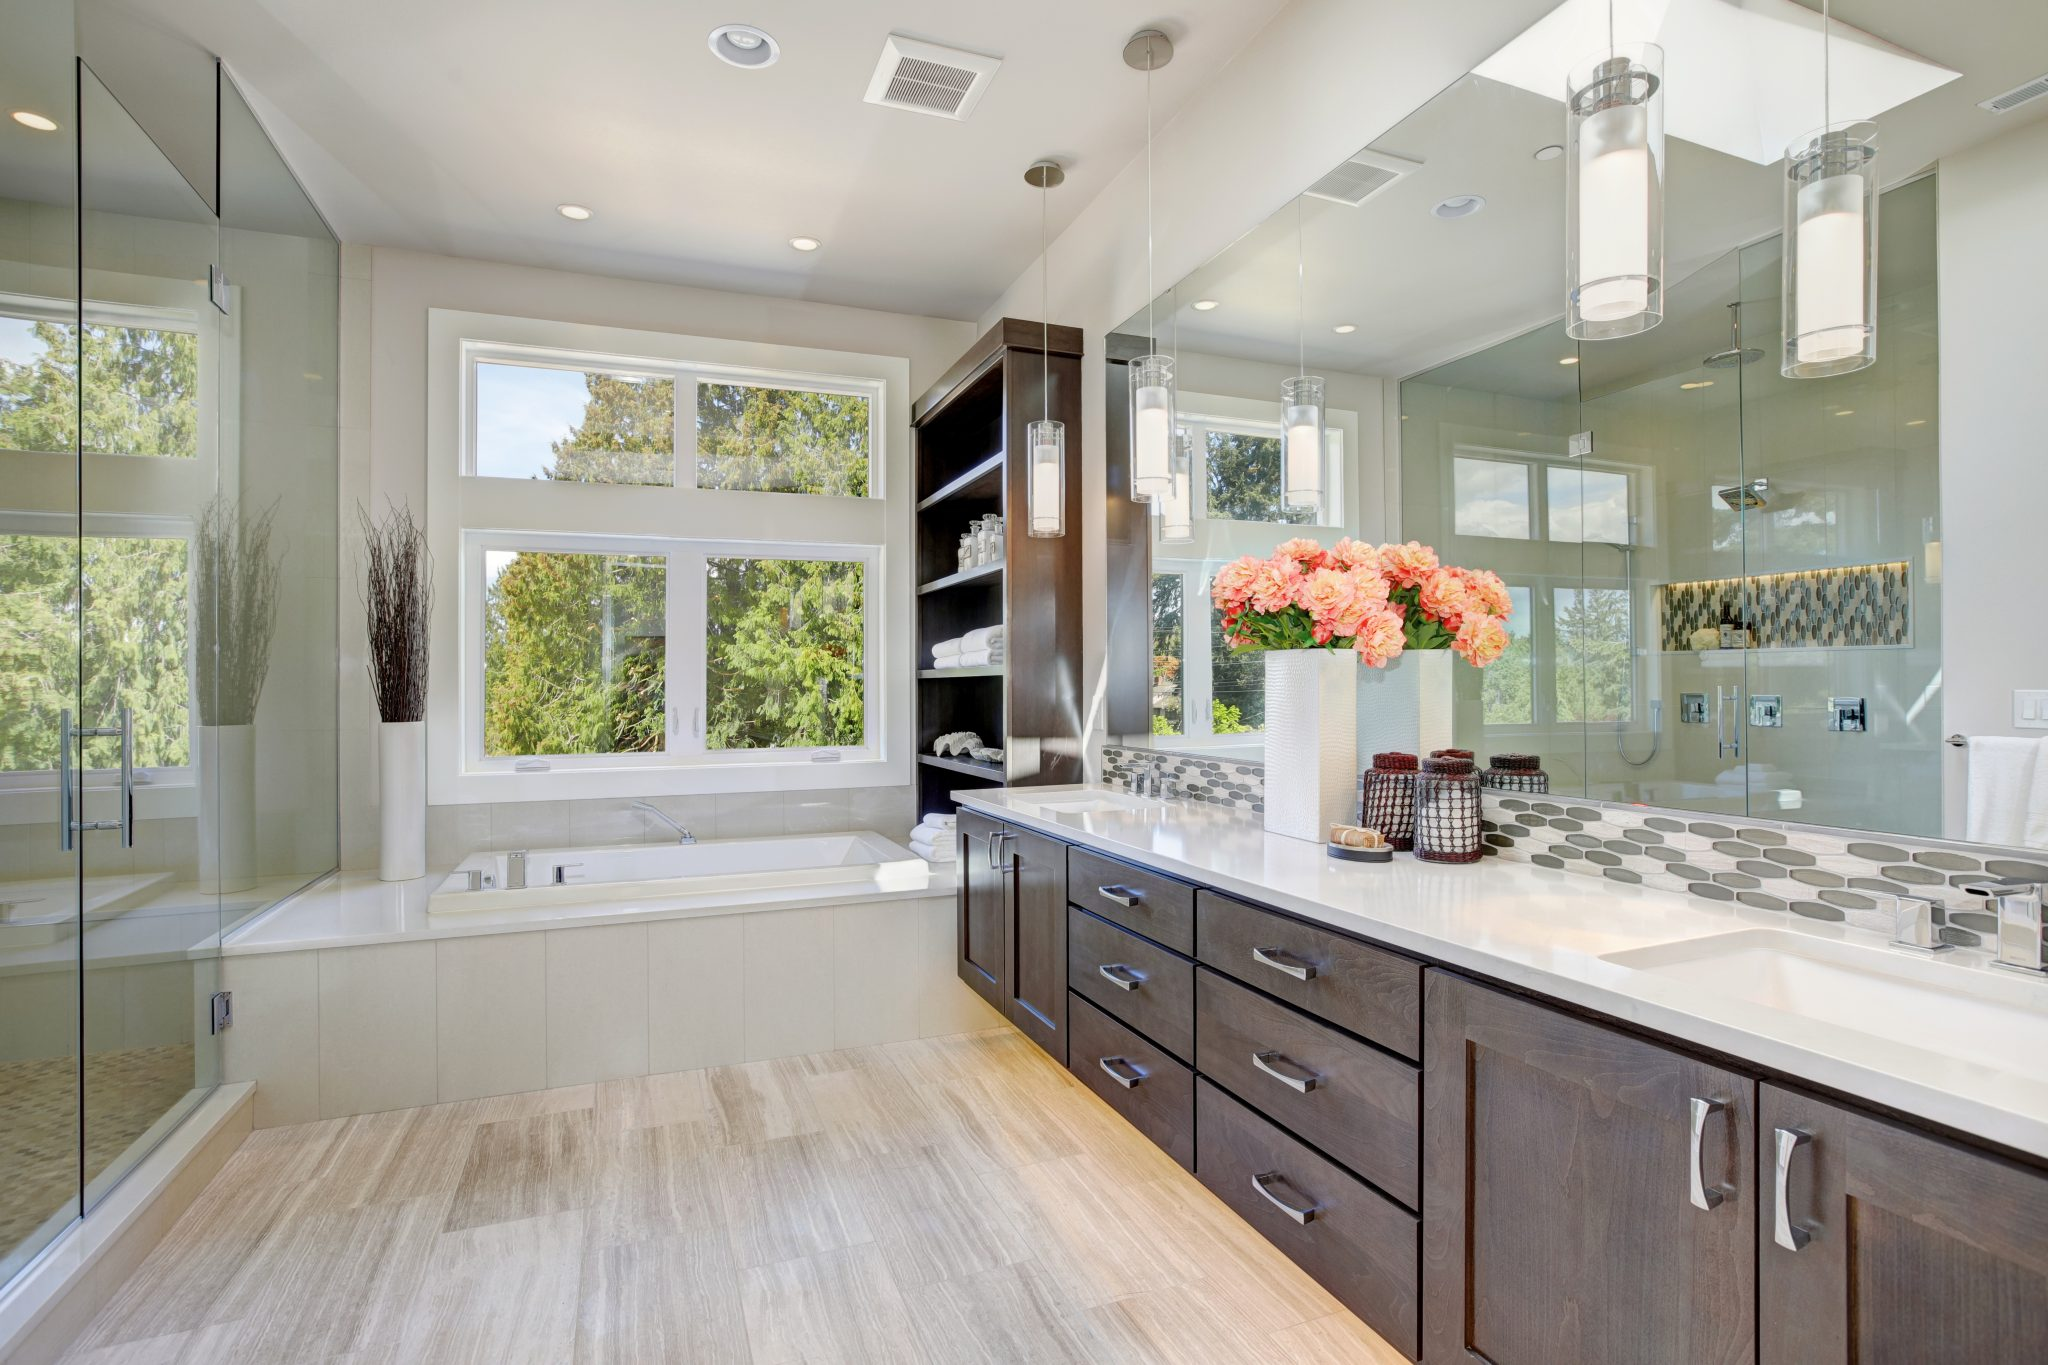 Updating Bathroom Can Save You Money